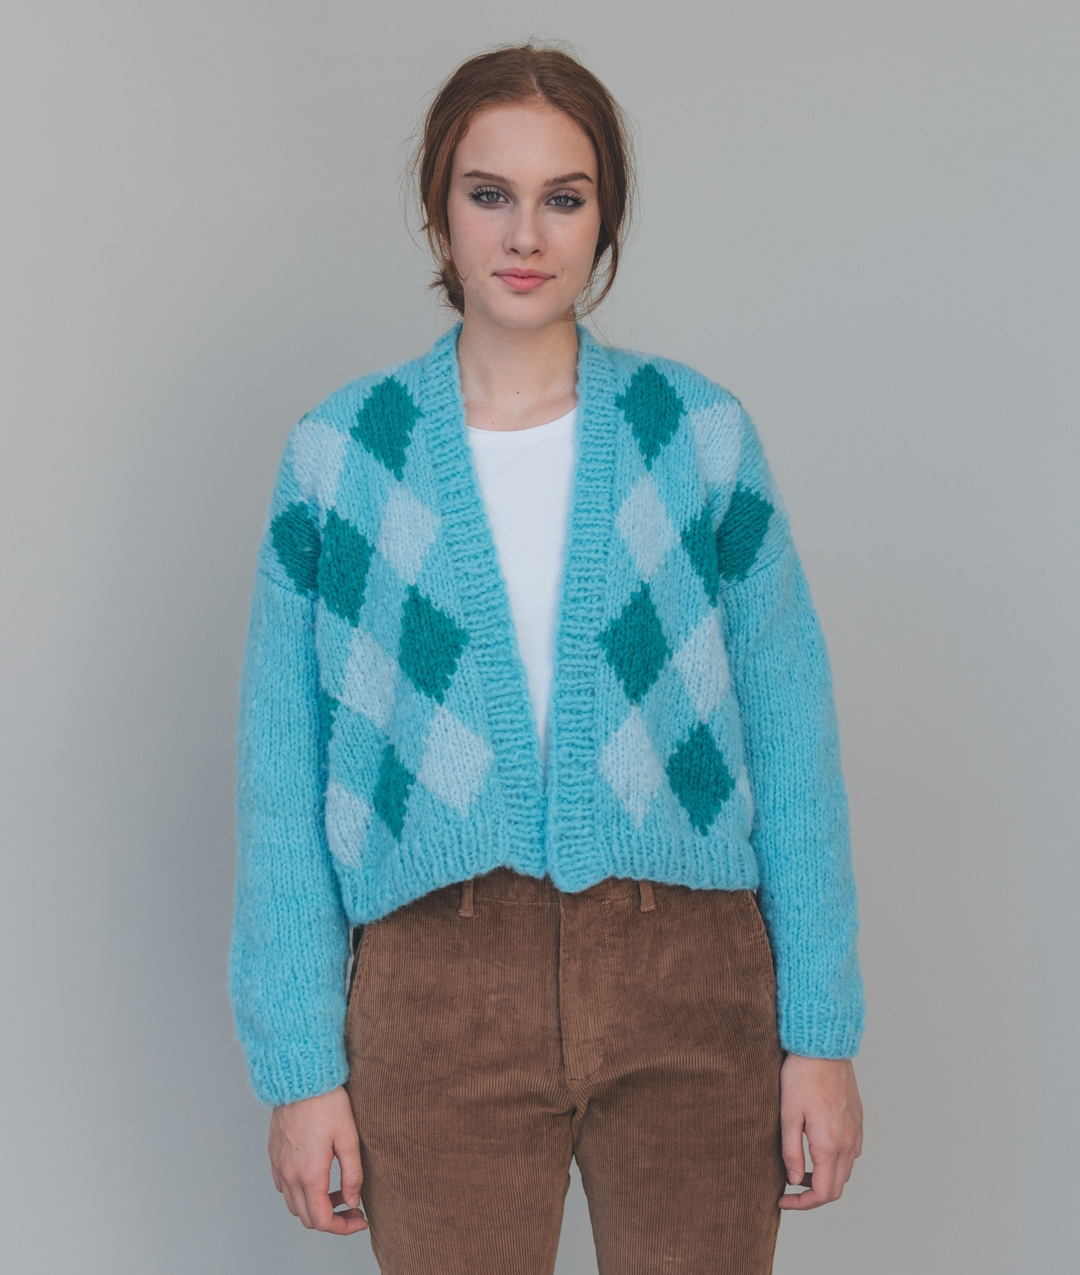 Fall / Winter 2018-19 Collection - Collections - ICE CREAM CARDI - 1